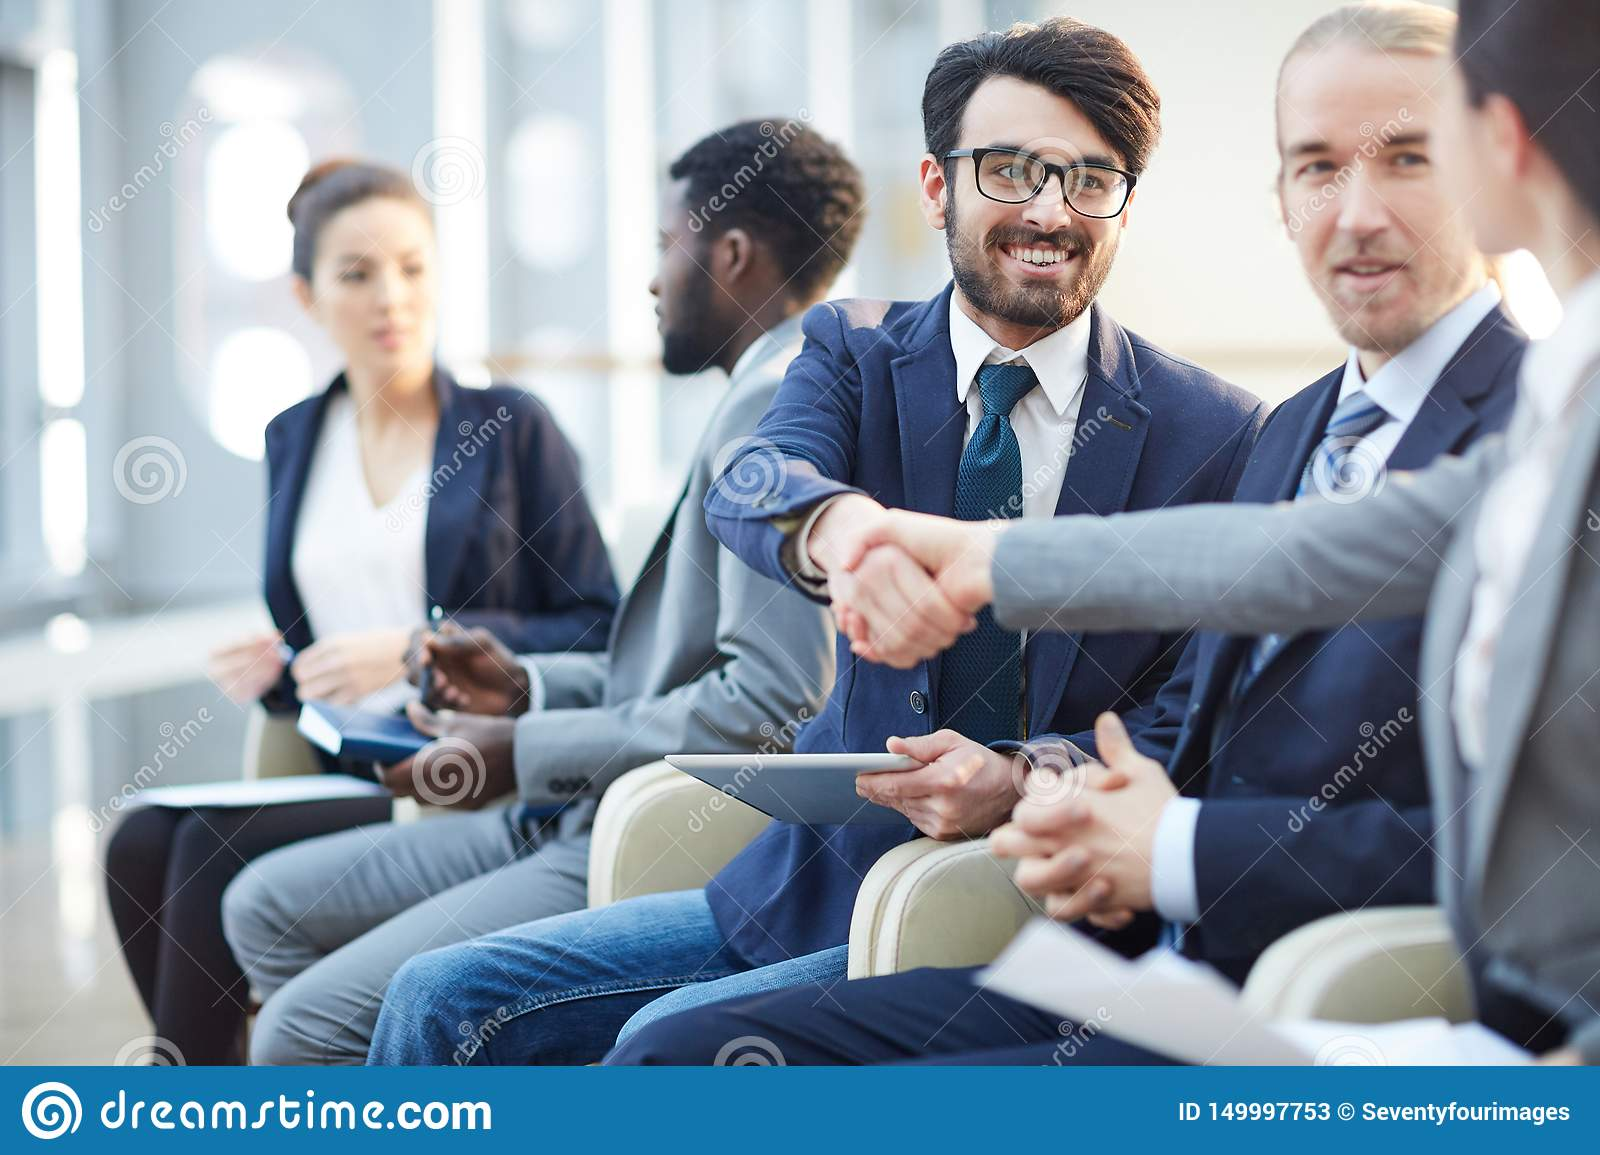 Meeting New People At Conference Stock Image